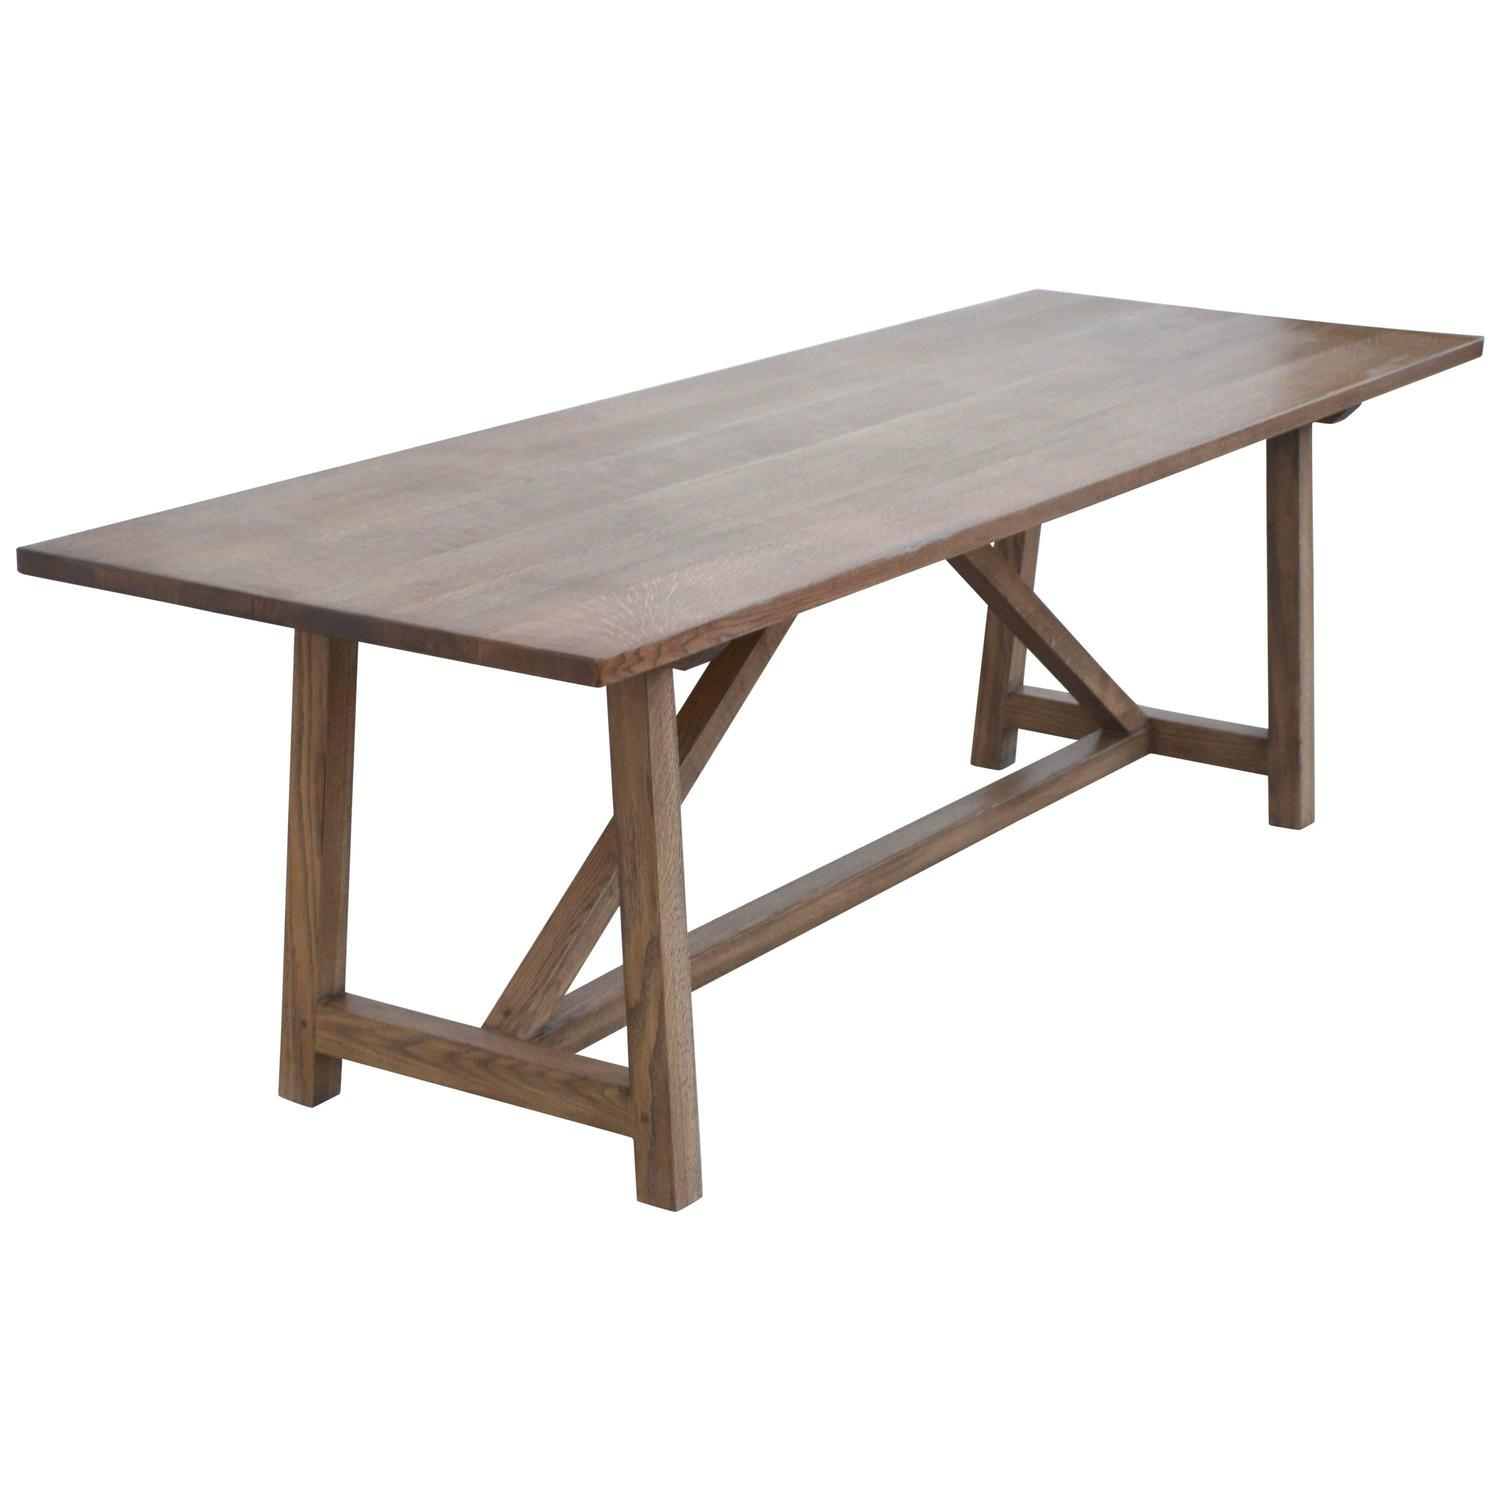 Custom dining table in rift white oak for sale at 1stdibs for Dining room tables handmade